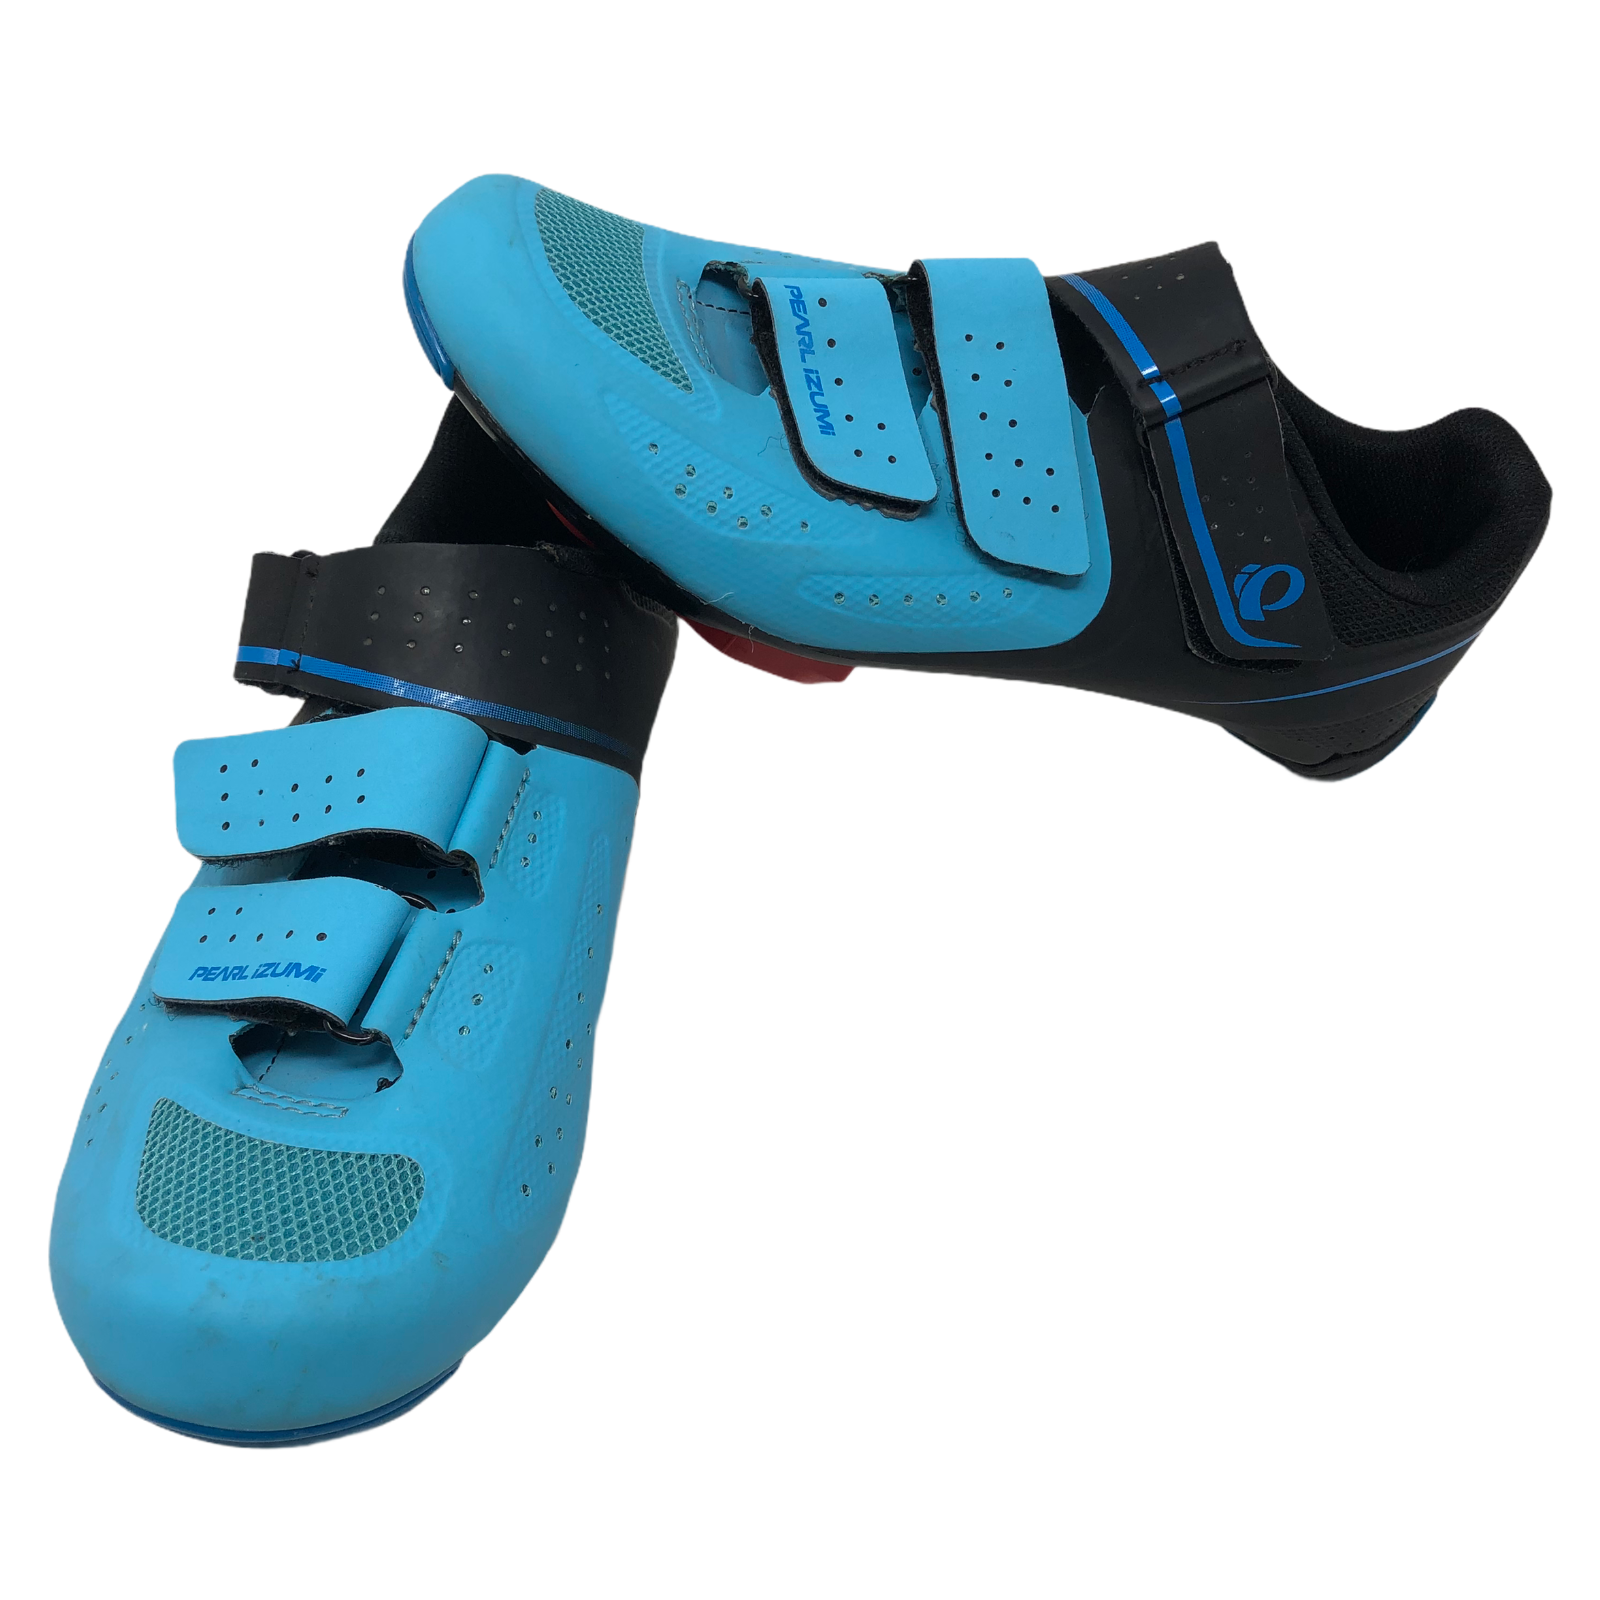 Pearl Izumi Women's Select Road v5 Shoe Teal Black Cycling Shoes Size 38 Bicycle - $64.34